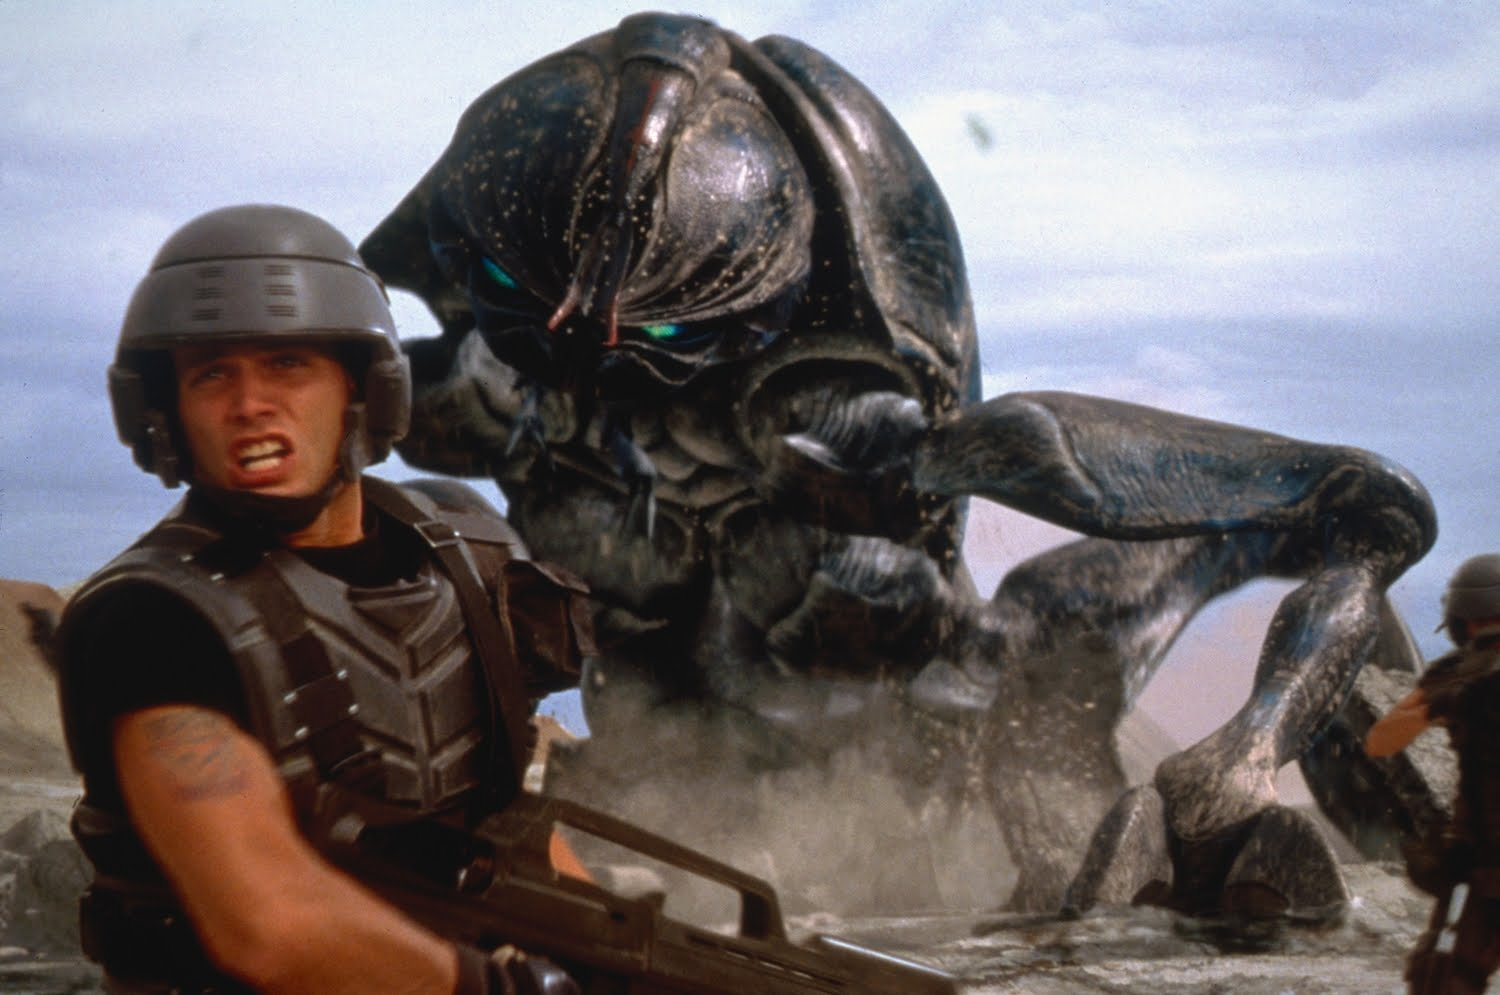 The Top Ten Alien Movies